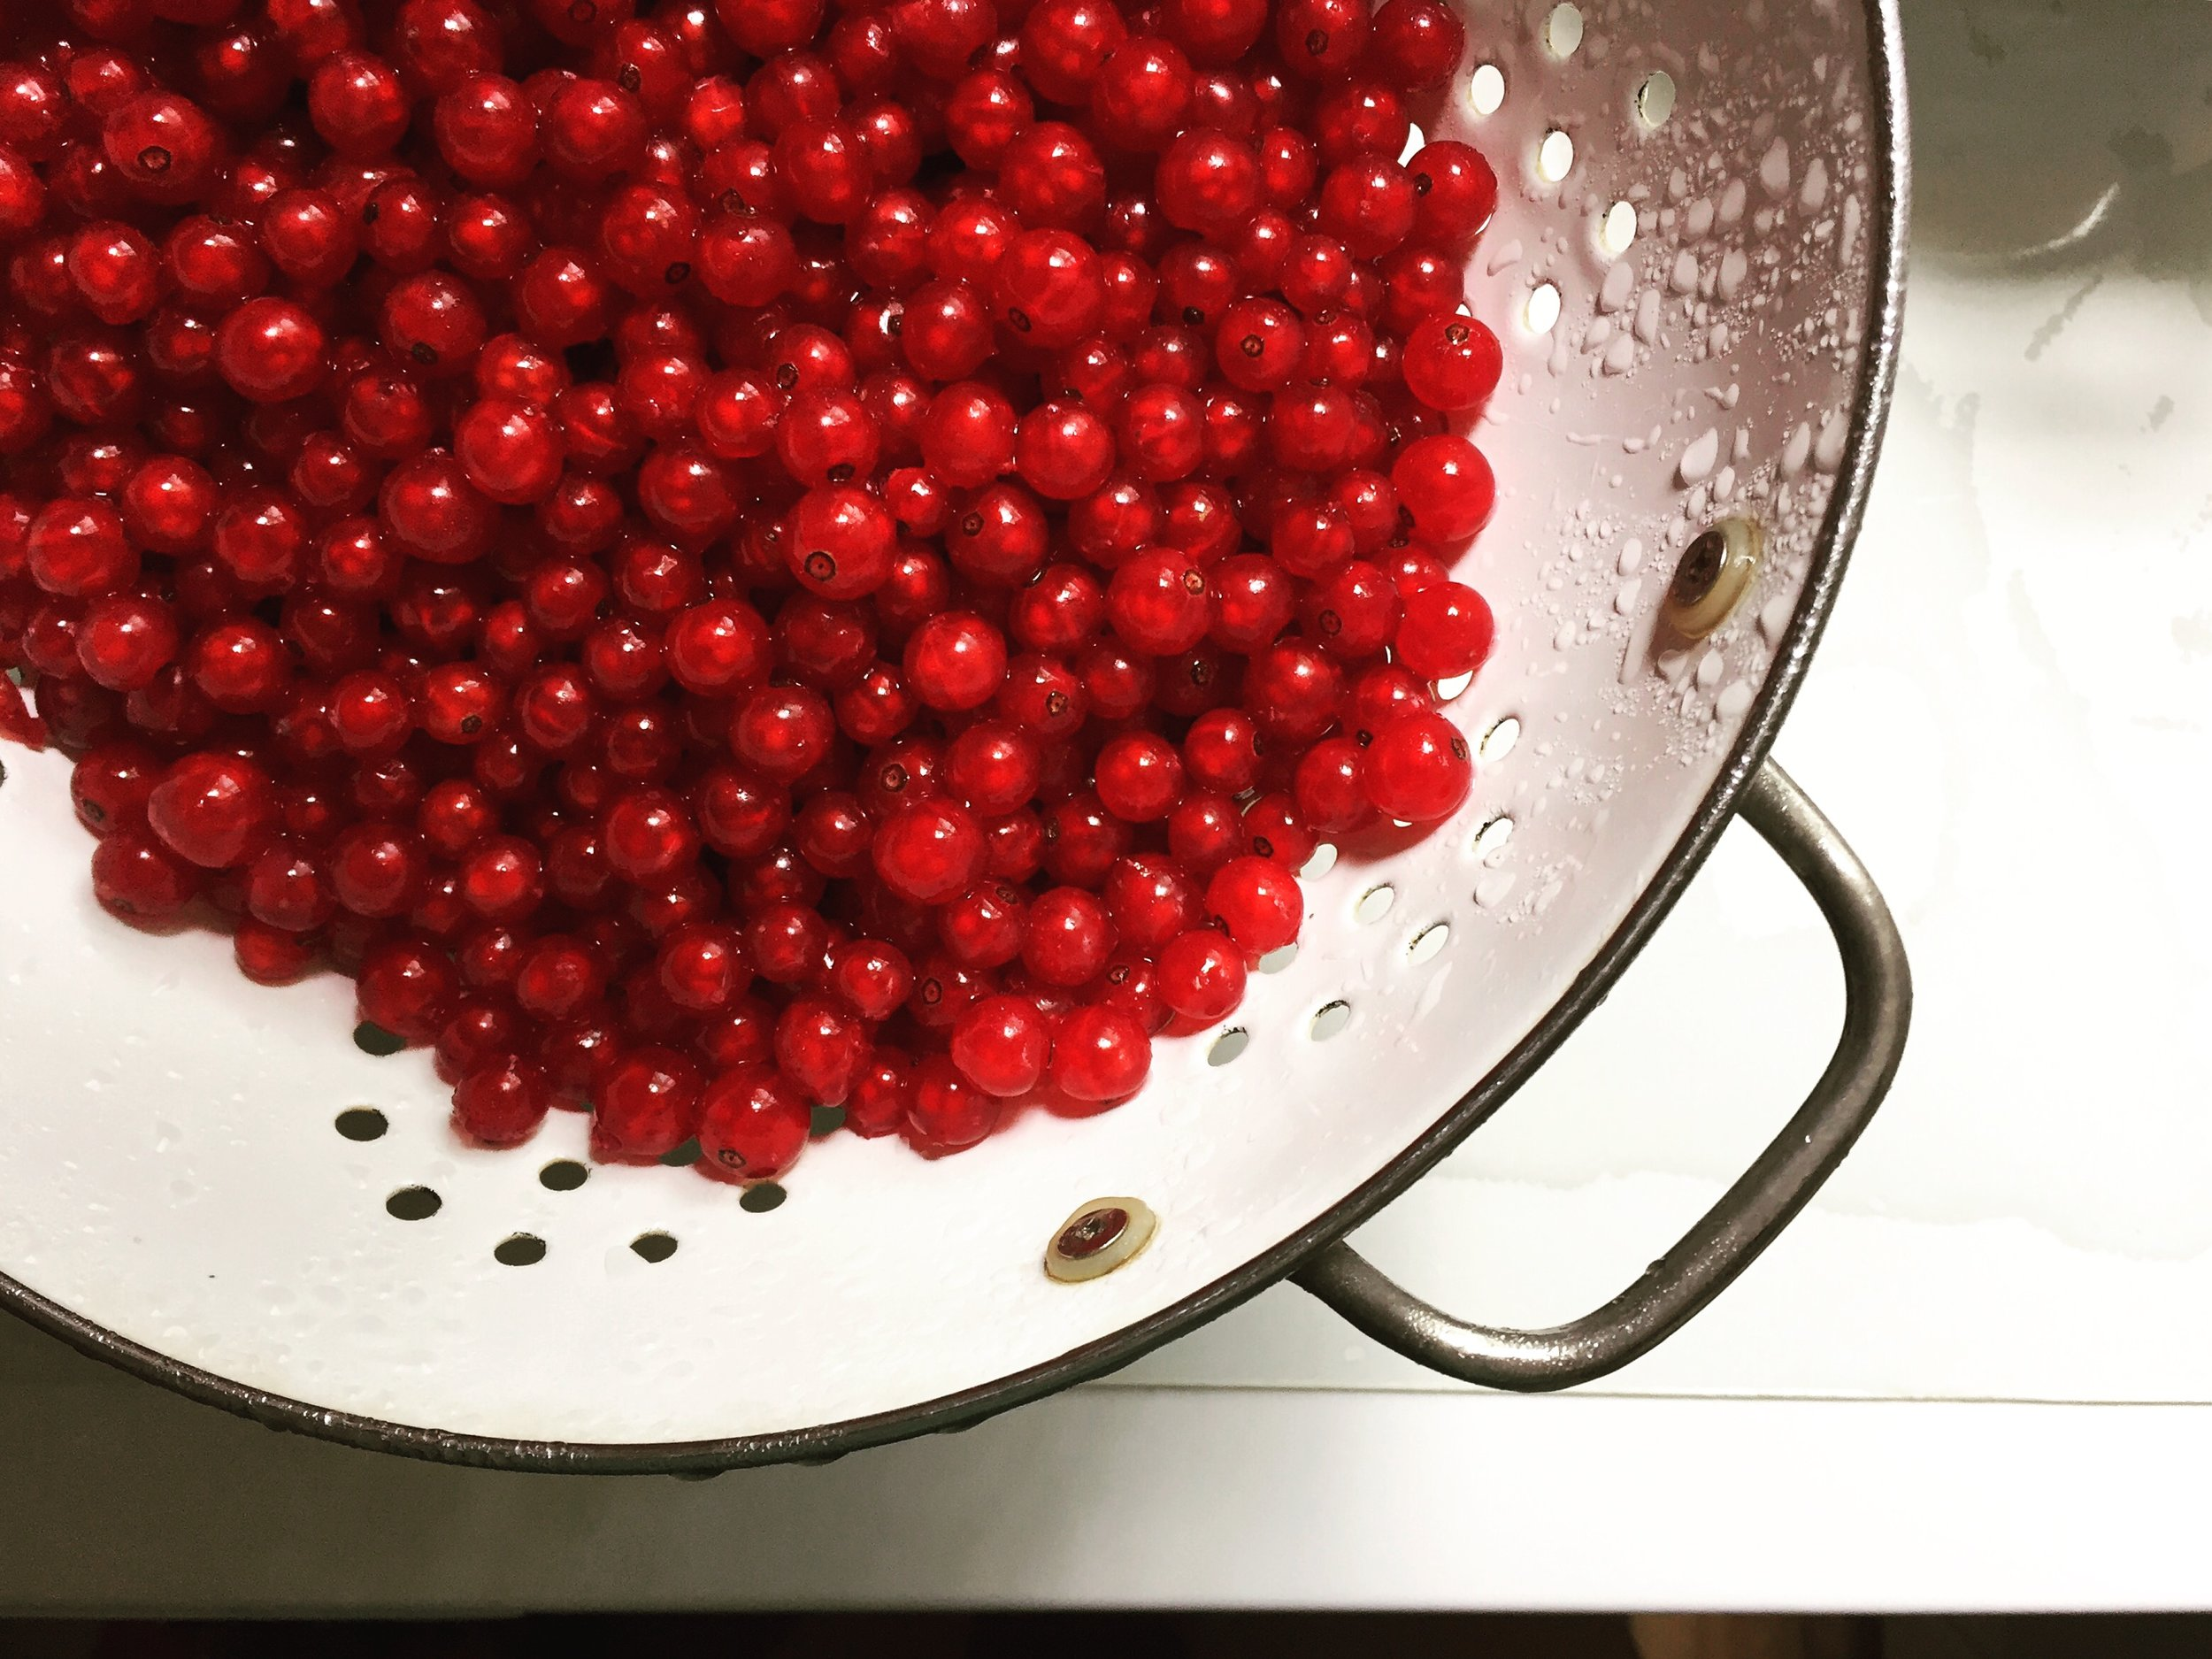 Gorgeous Red Currants! Growing our own and buying from experienced Northeast growers allows us to make preserves with truly ripe fruit.